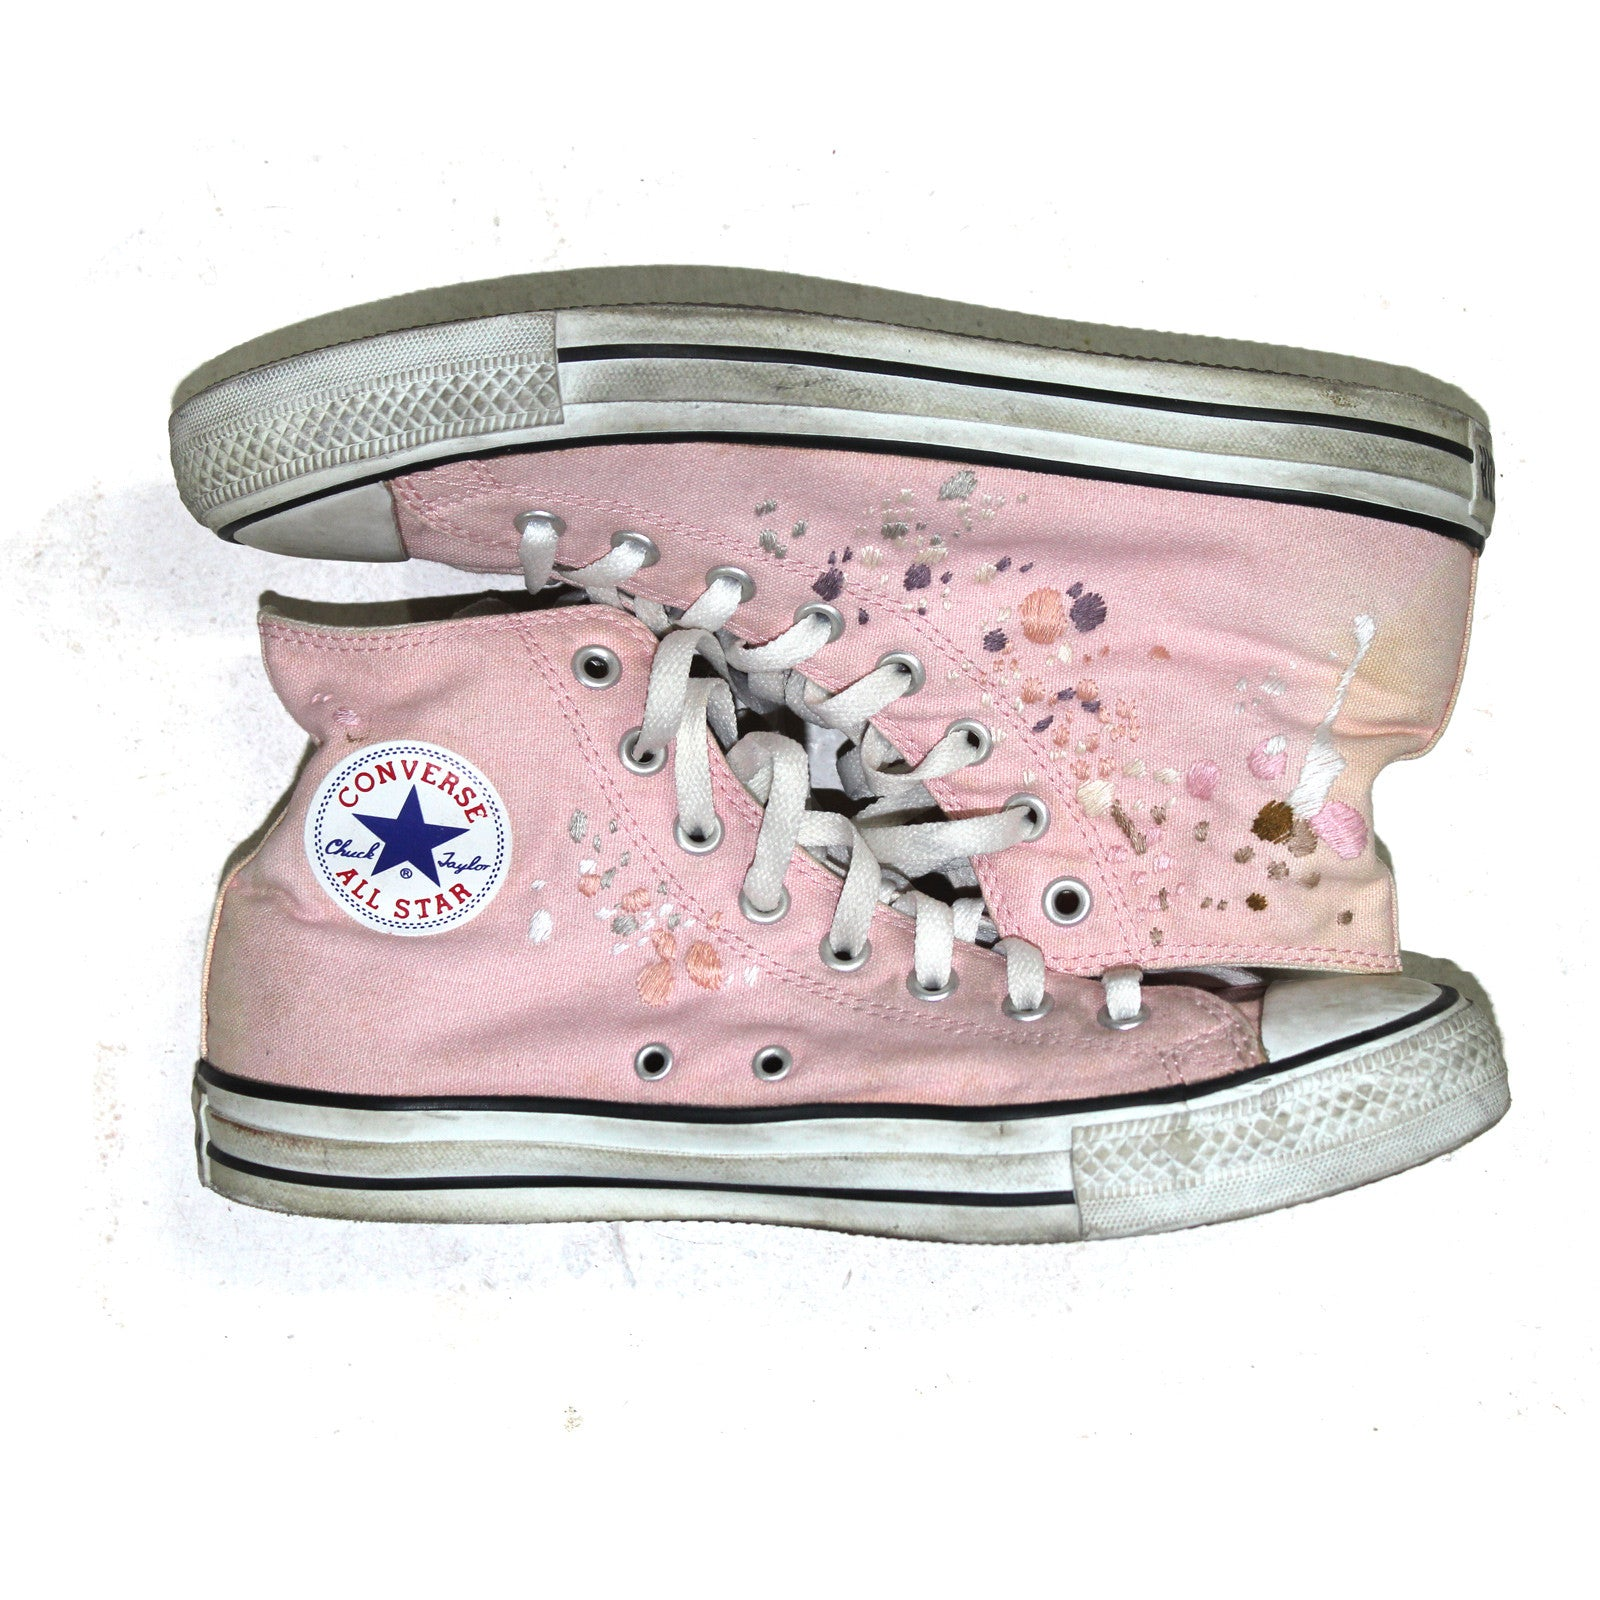 "BANDULU ""WAY PAST ELLE"" VINTAGE CONVERSE CHUCKS"